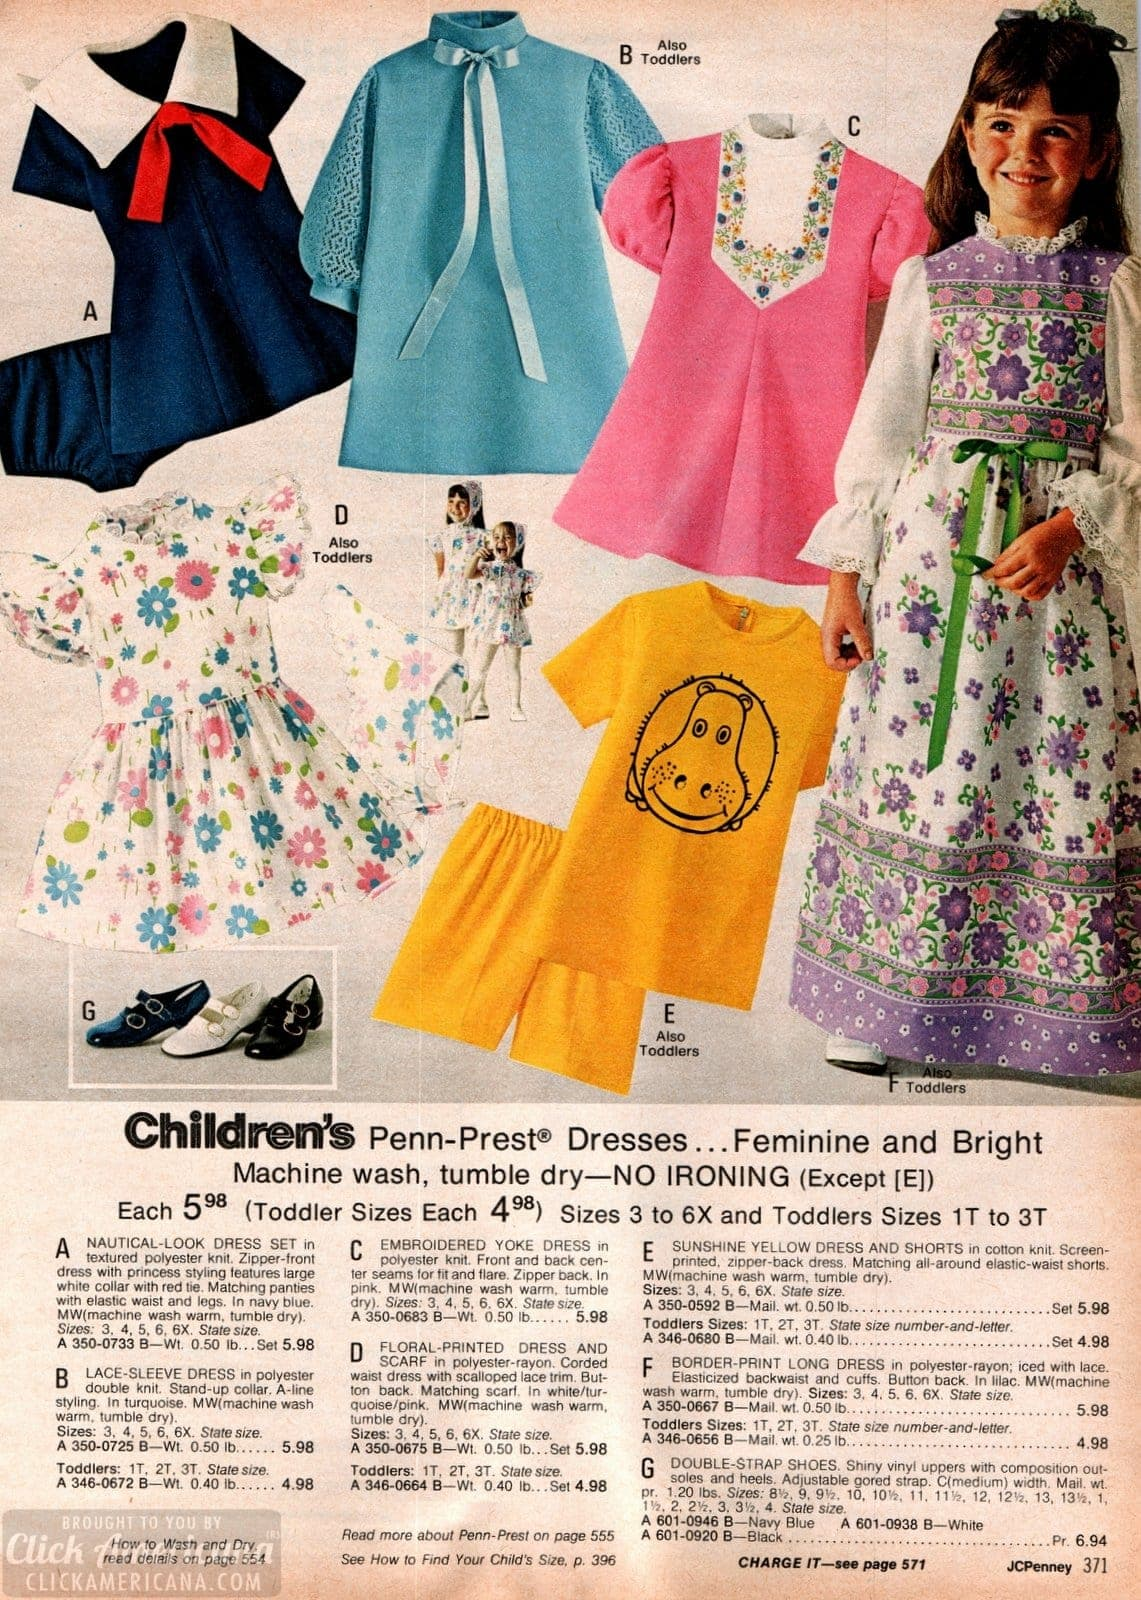 Cute retro dresses for little girls - nautical and lace plus floral prints and patterns - from 1973